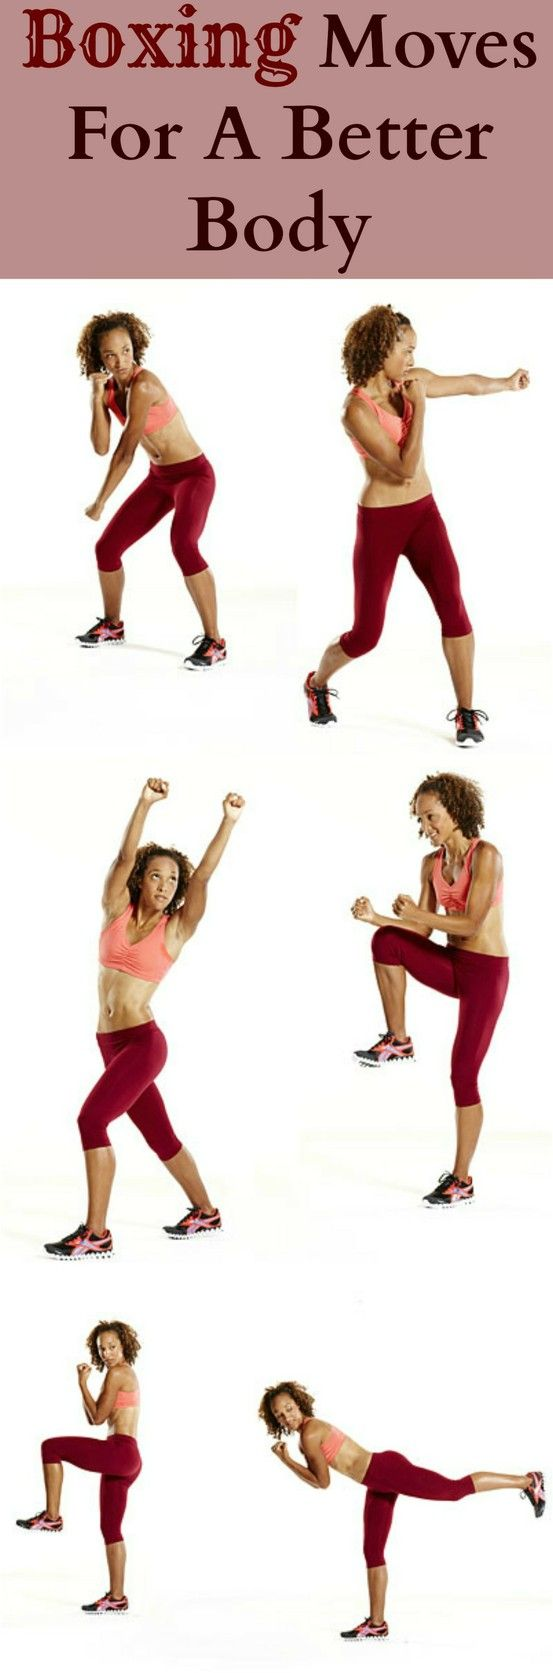 Mix-and-Match #Boxing Moves for a Better Body. #cardio | Health.com